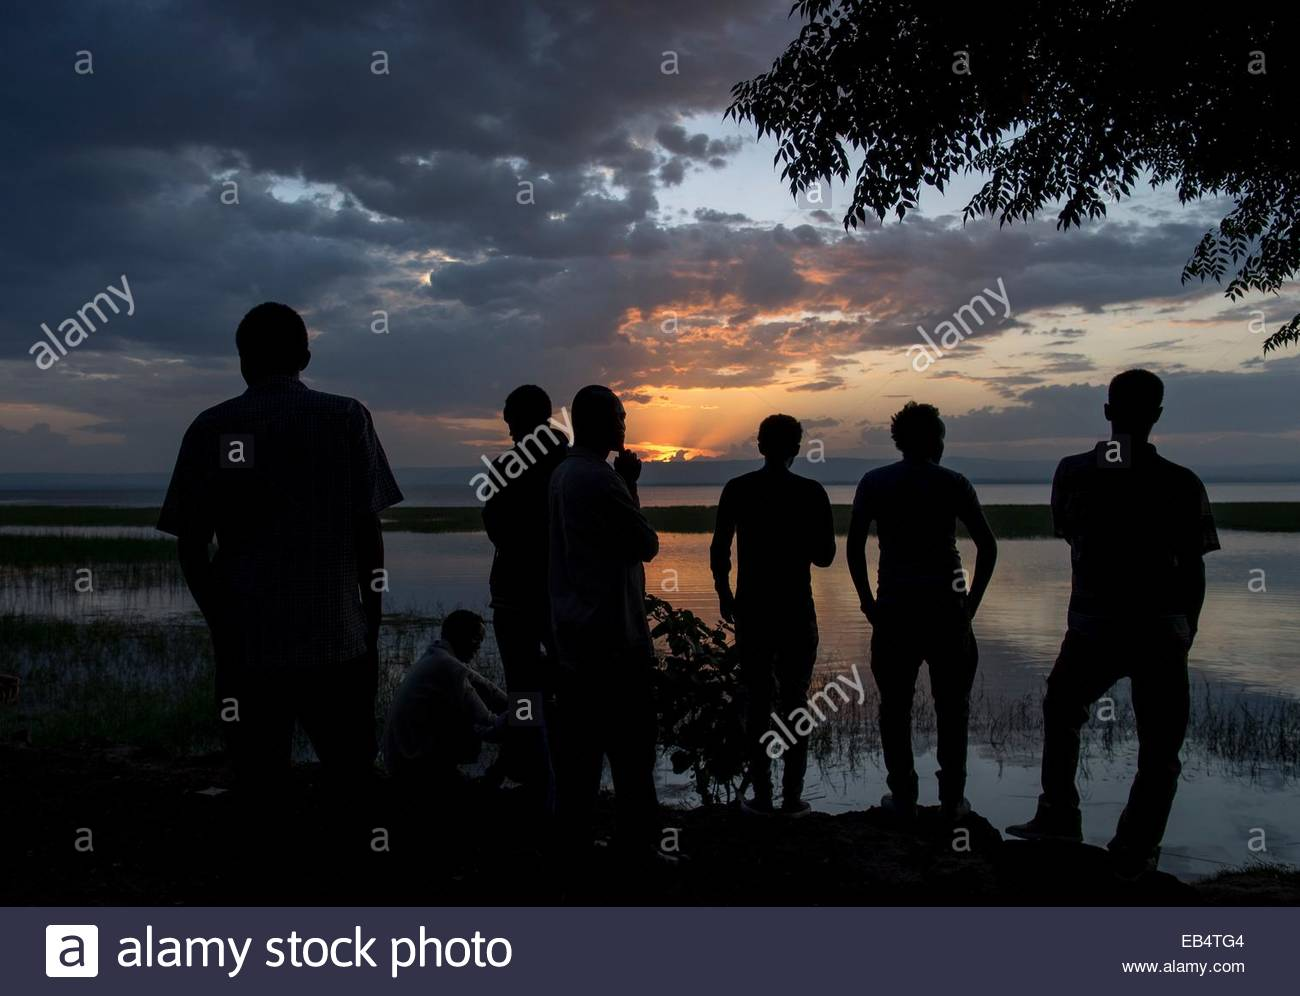 Men silhouetted against Lake Awasa at sunset. - Stock Image